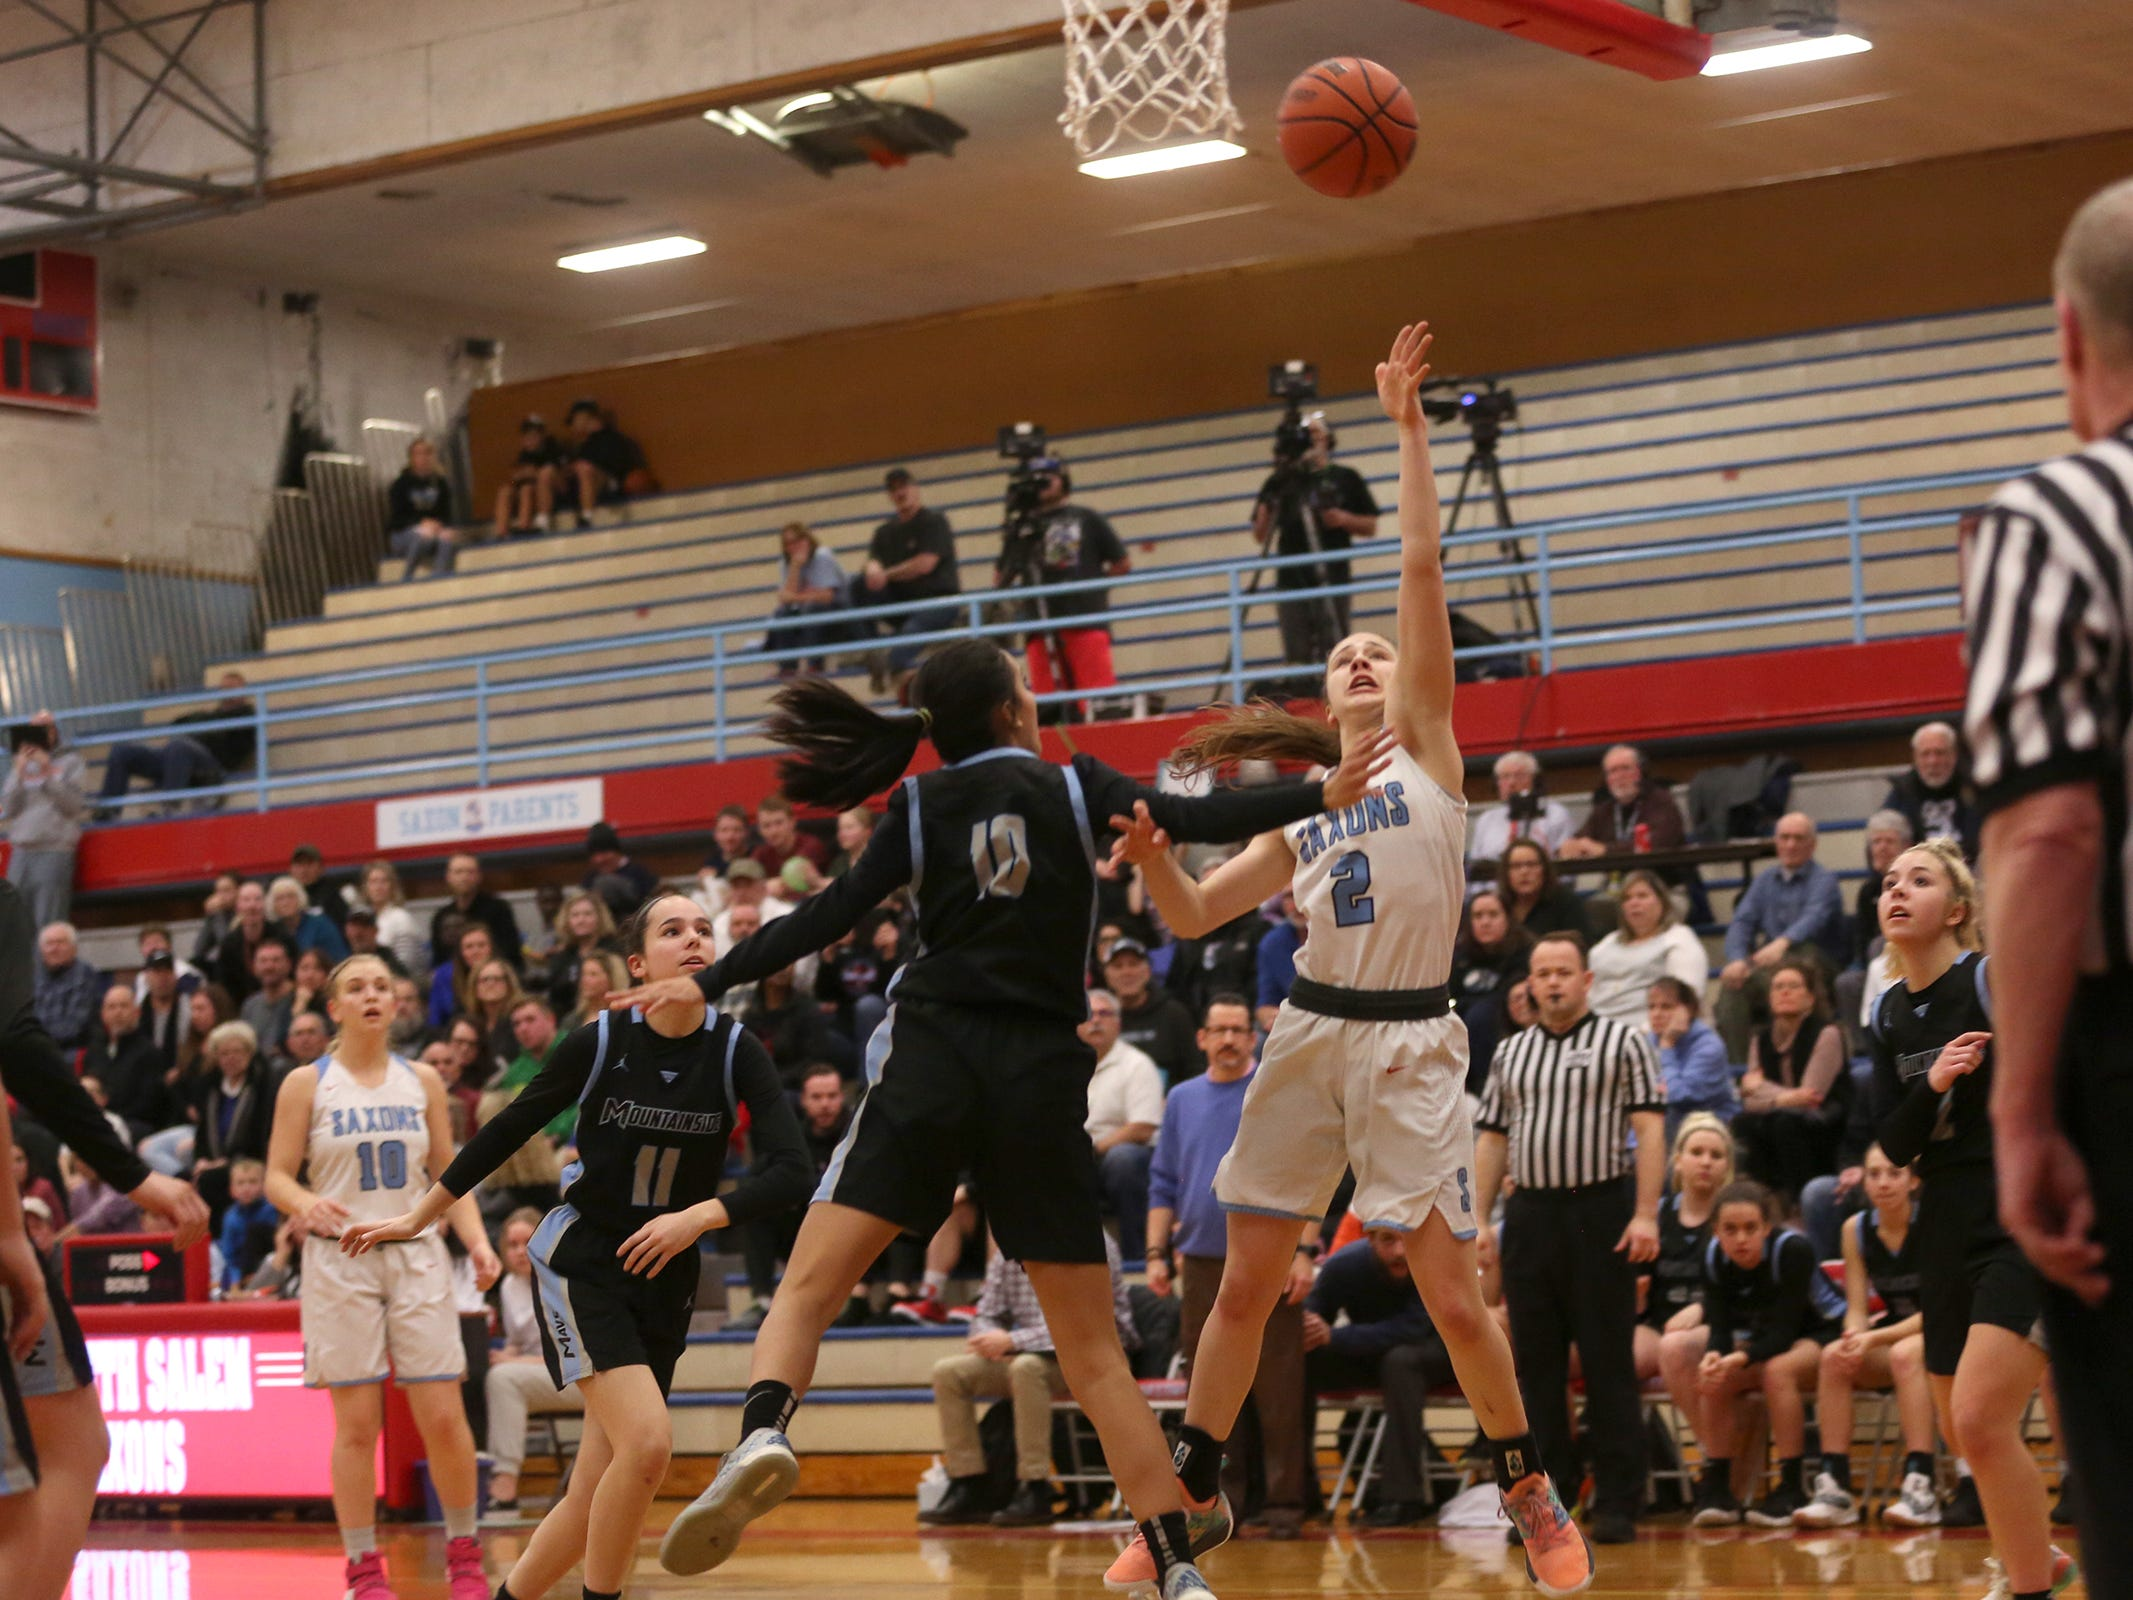 South Salem's Hilary James (2) goes up for a shot during the South Salem vs. Mountainside girls basketball OSAA playoff game in Salem on Thursday, Feb. 28, 2019.